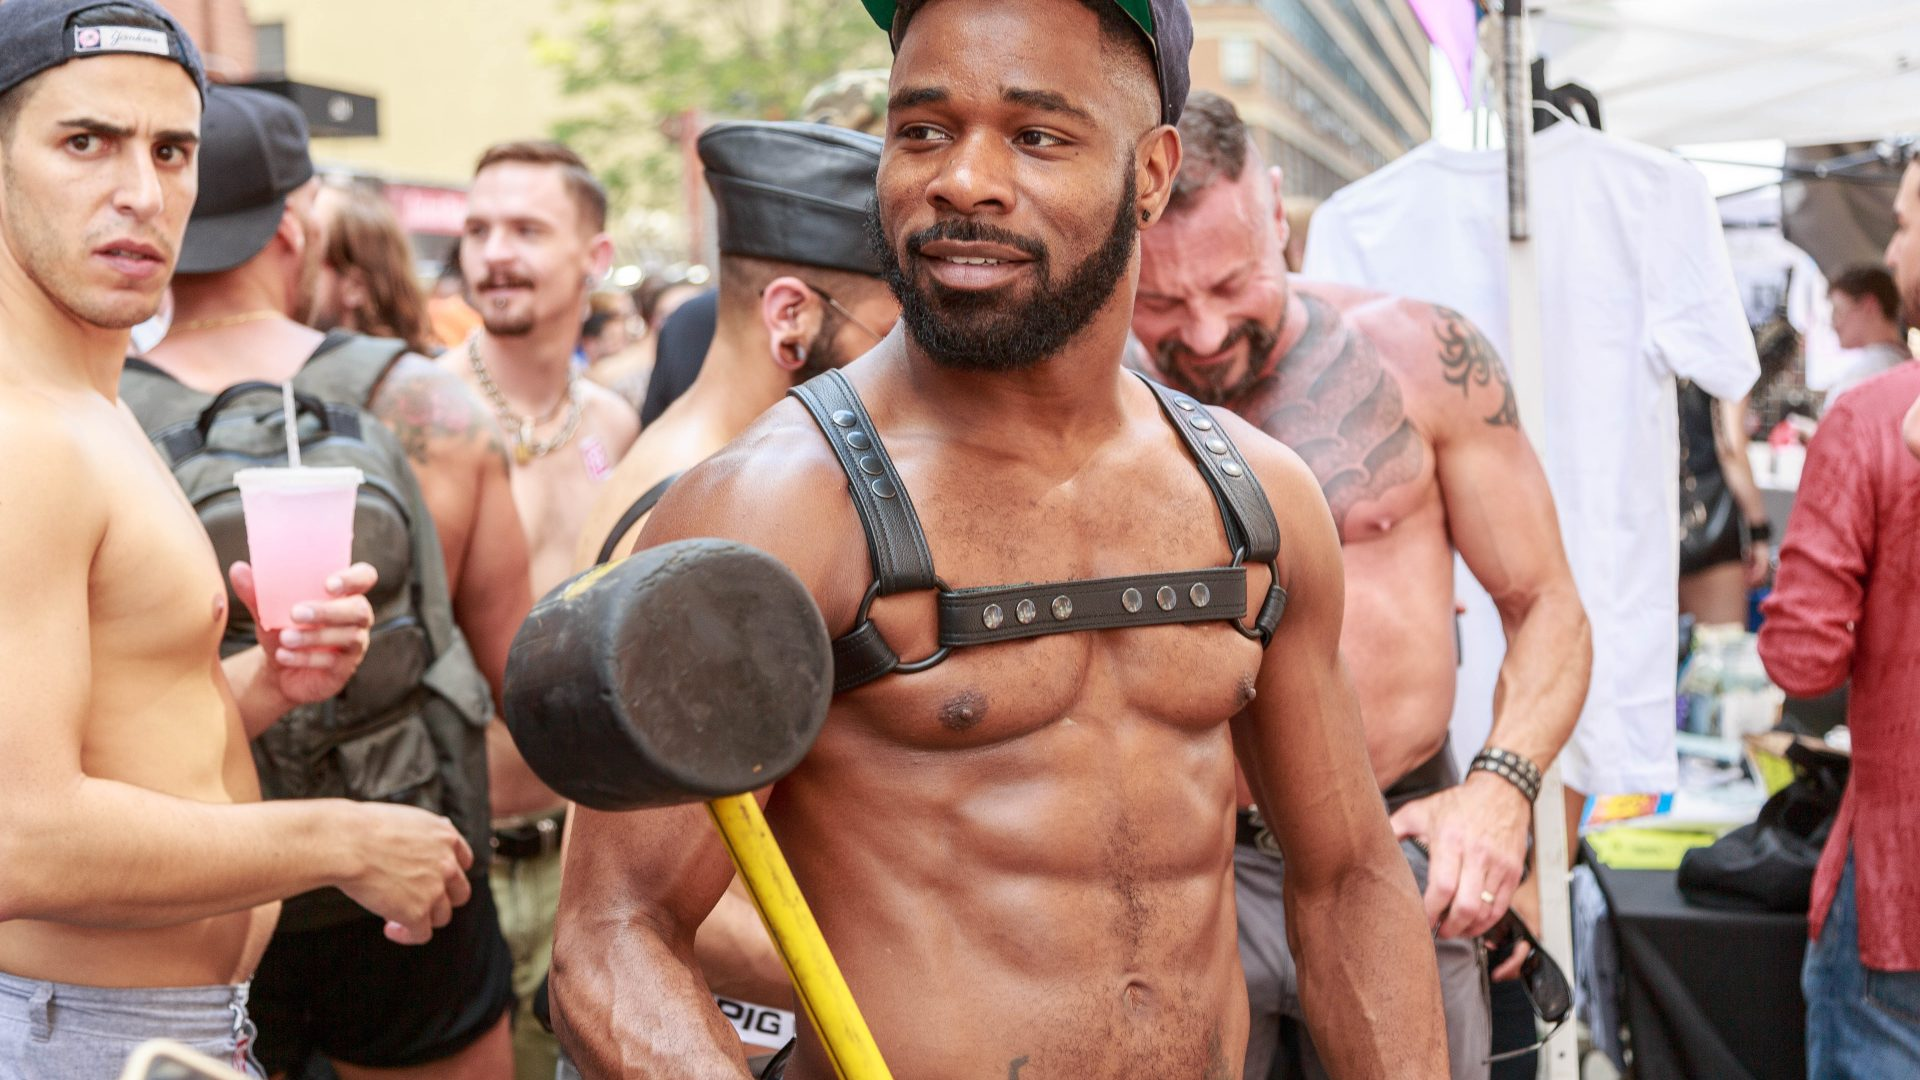 NYC Folsom Street East Festival 2015. Photo by Atomische. Tom Giebel.